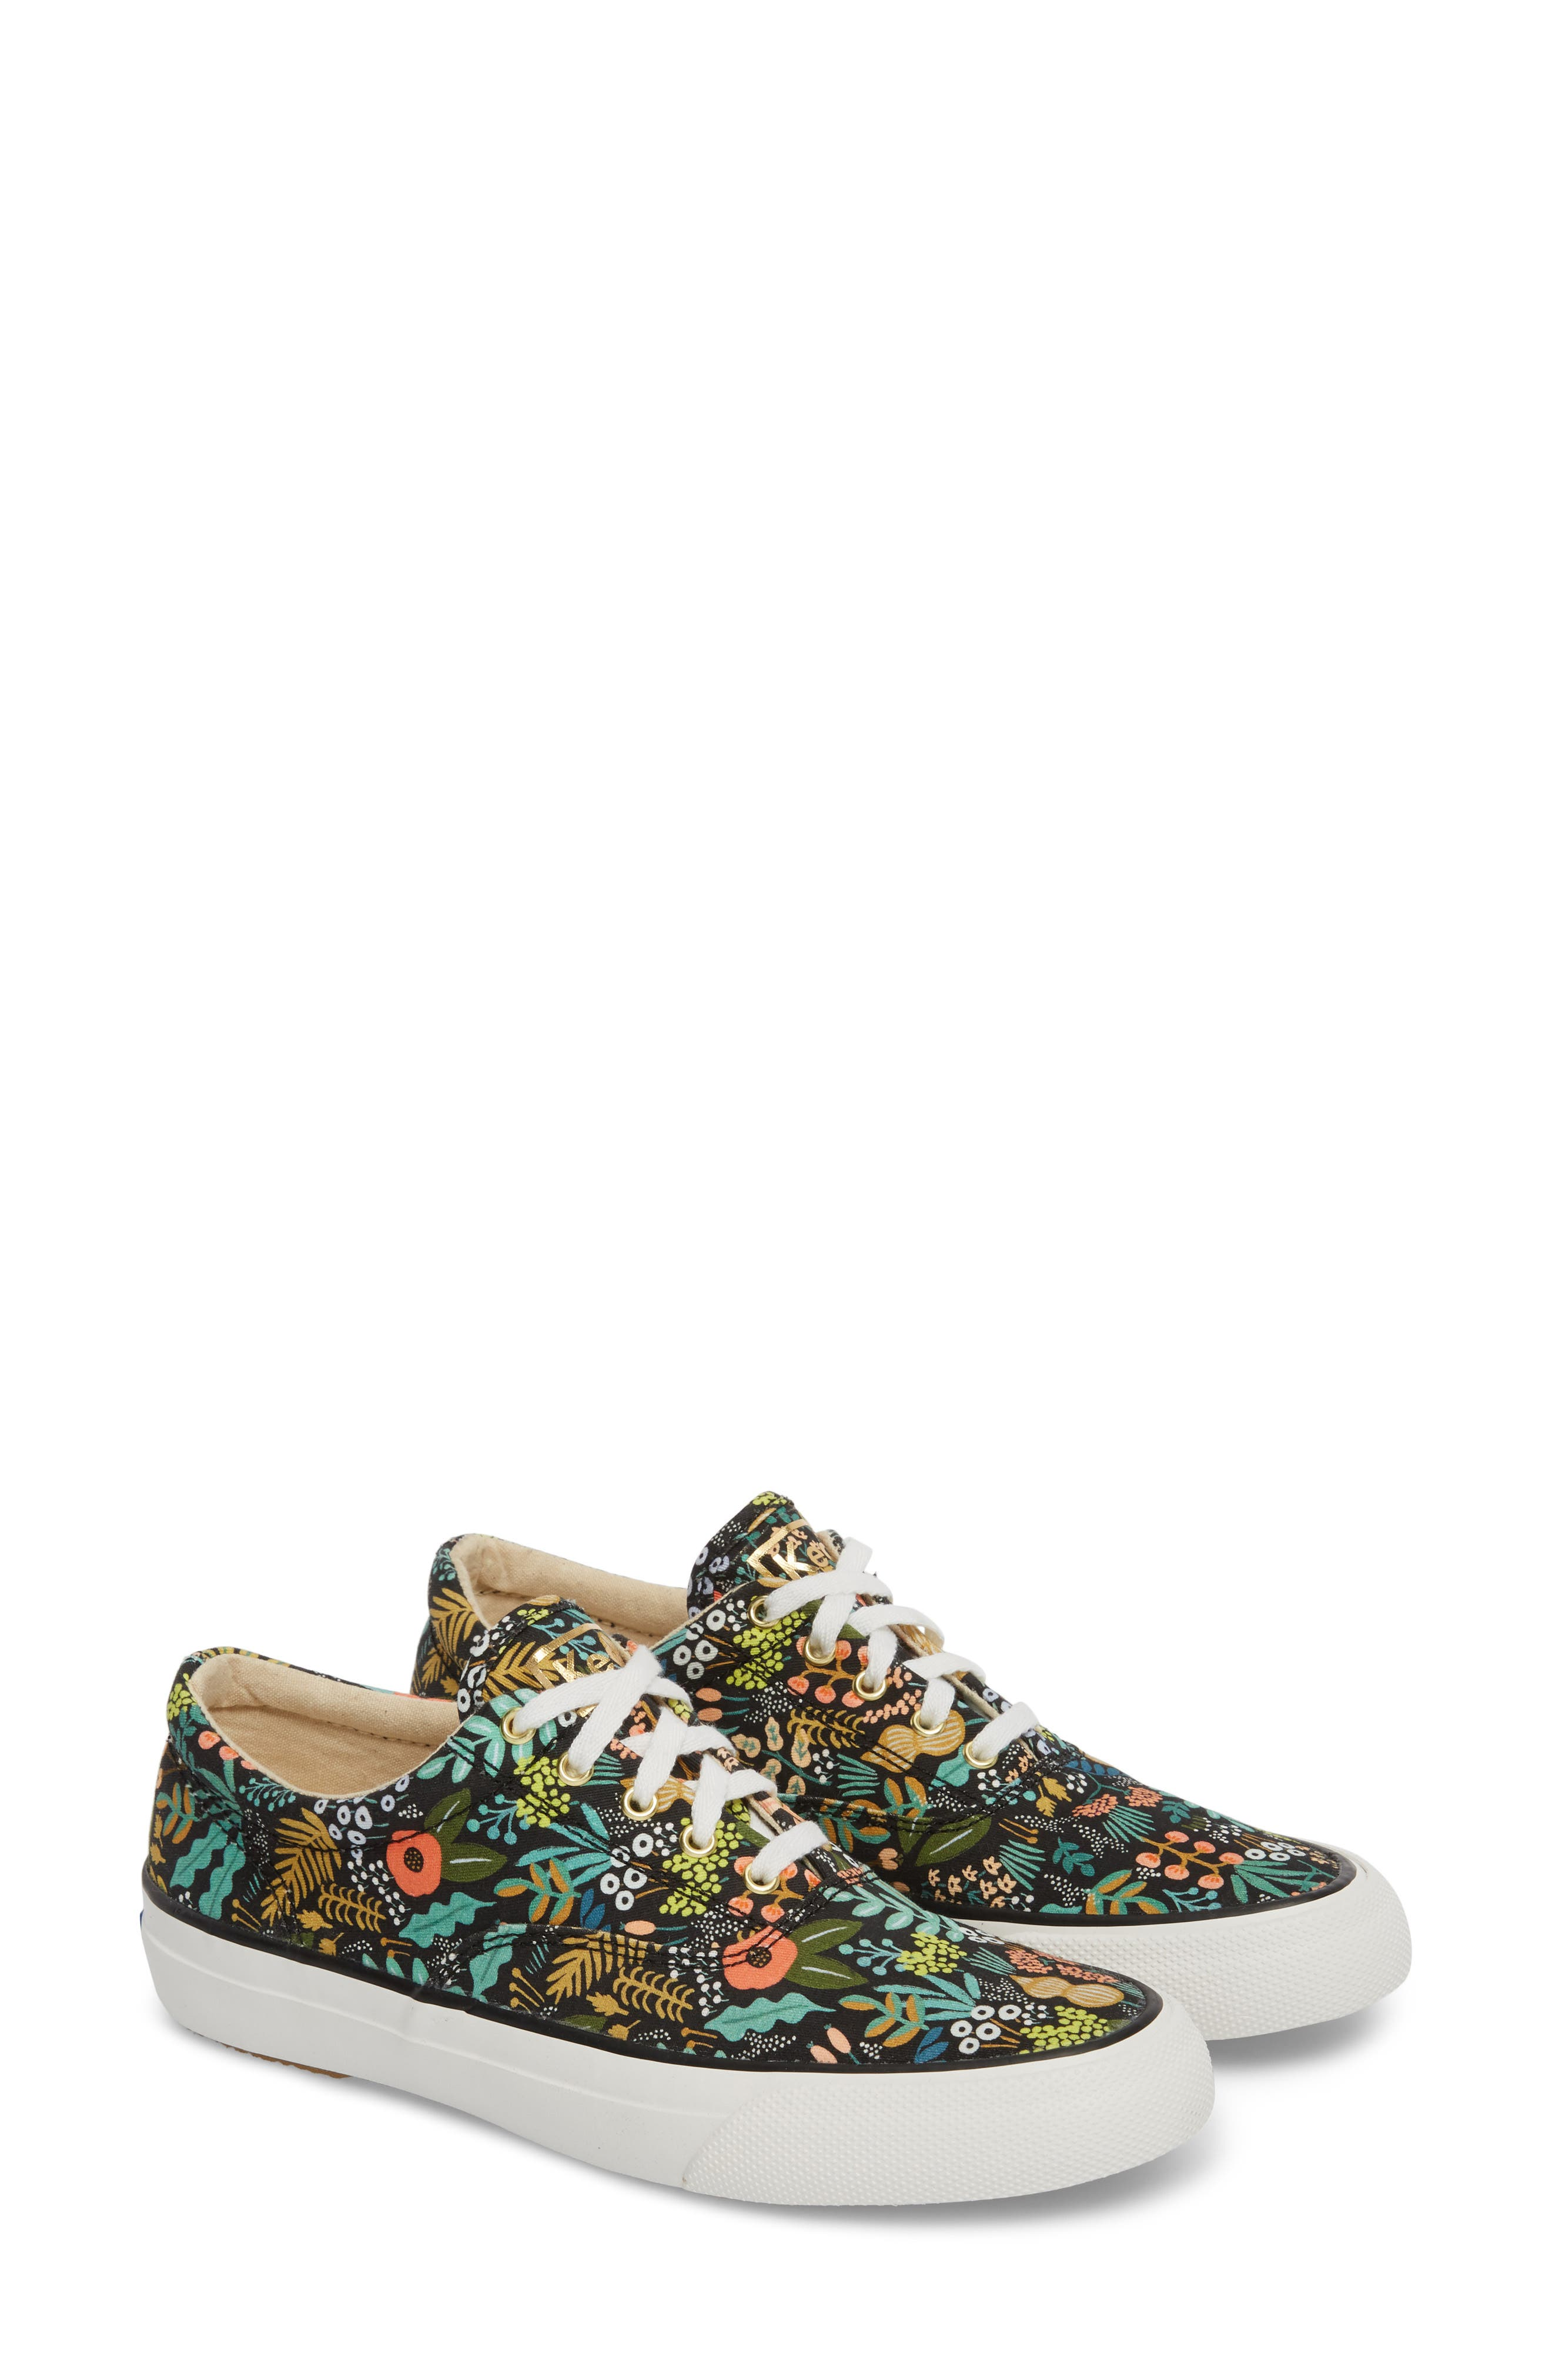 KEDS<SUP>®</SUP>, x Rifle Paper Co. Anchor Lively Floral Slip-On Sneaker, Alternate thumbnail 2, color, BLACK